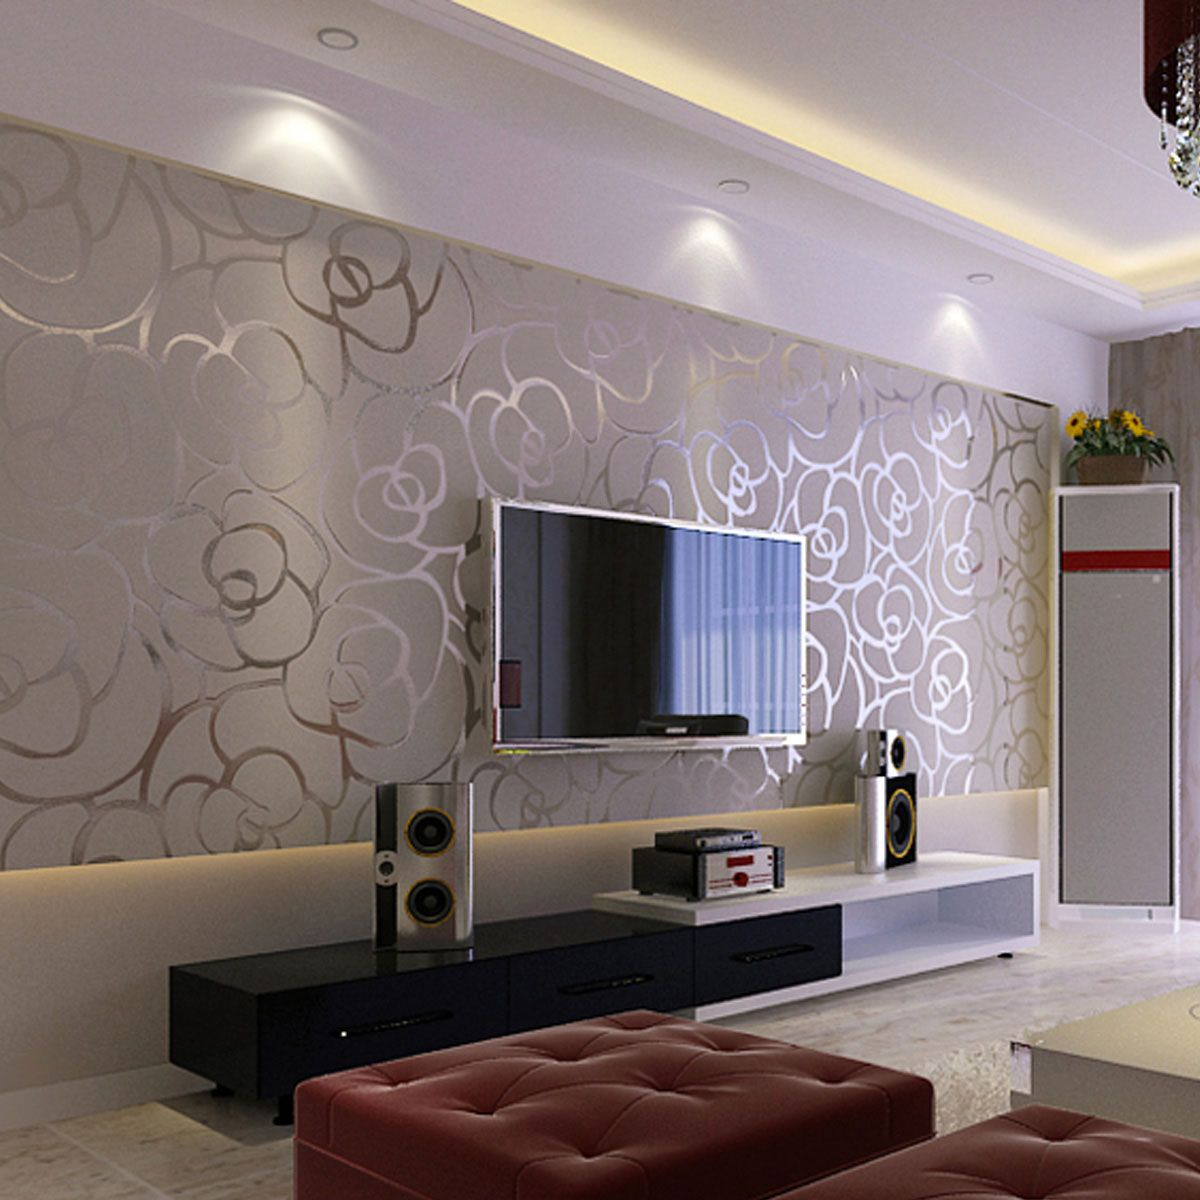 Tips and ideas for wallpaper in the   living room that you can use on your walls